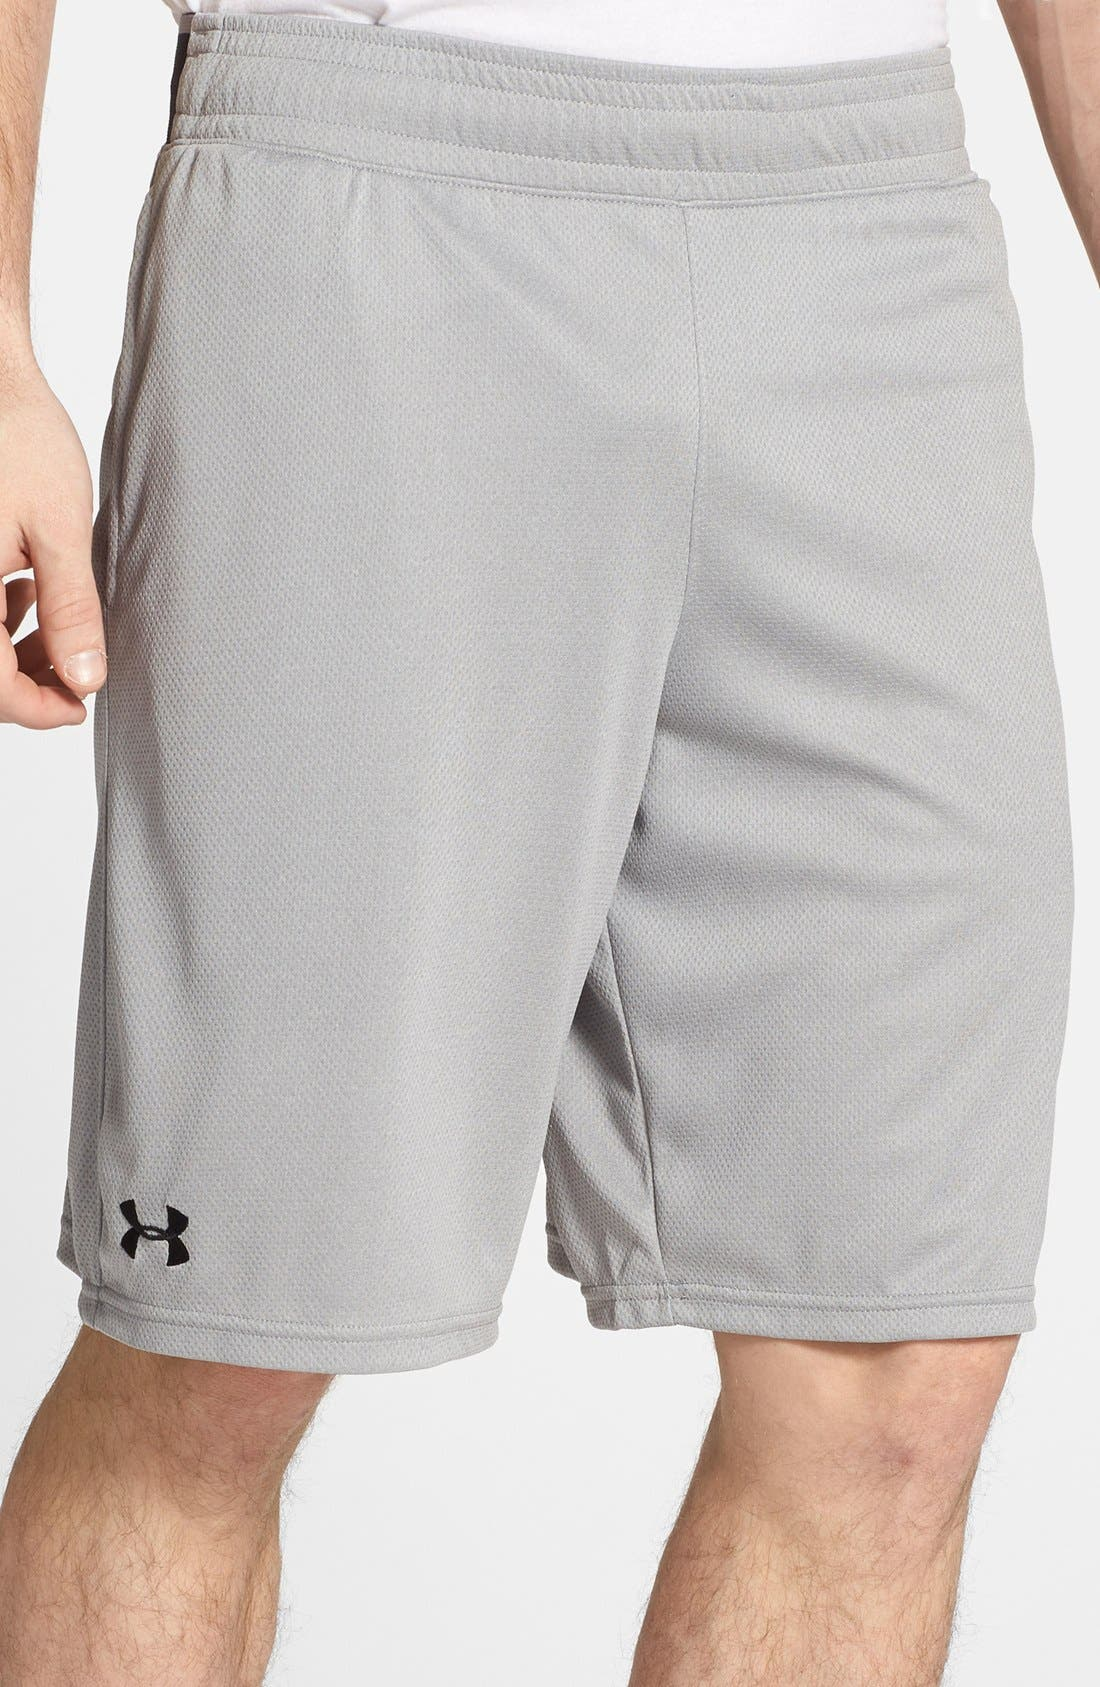 Alternate Image 1 Selected - Under Armour 'Reflex' HeatGear® Mesh Knit Shorts